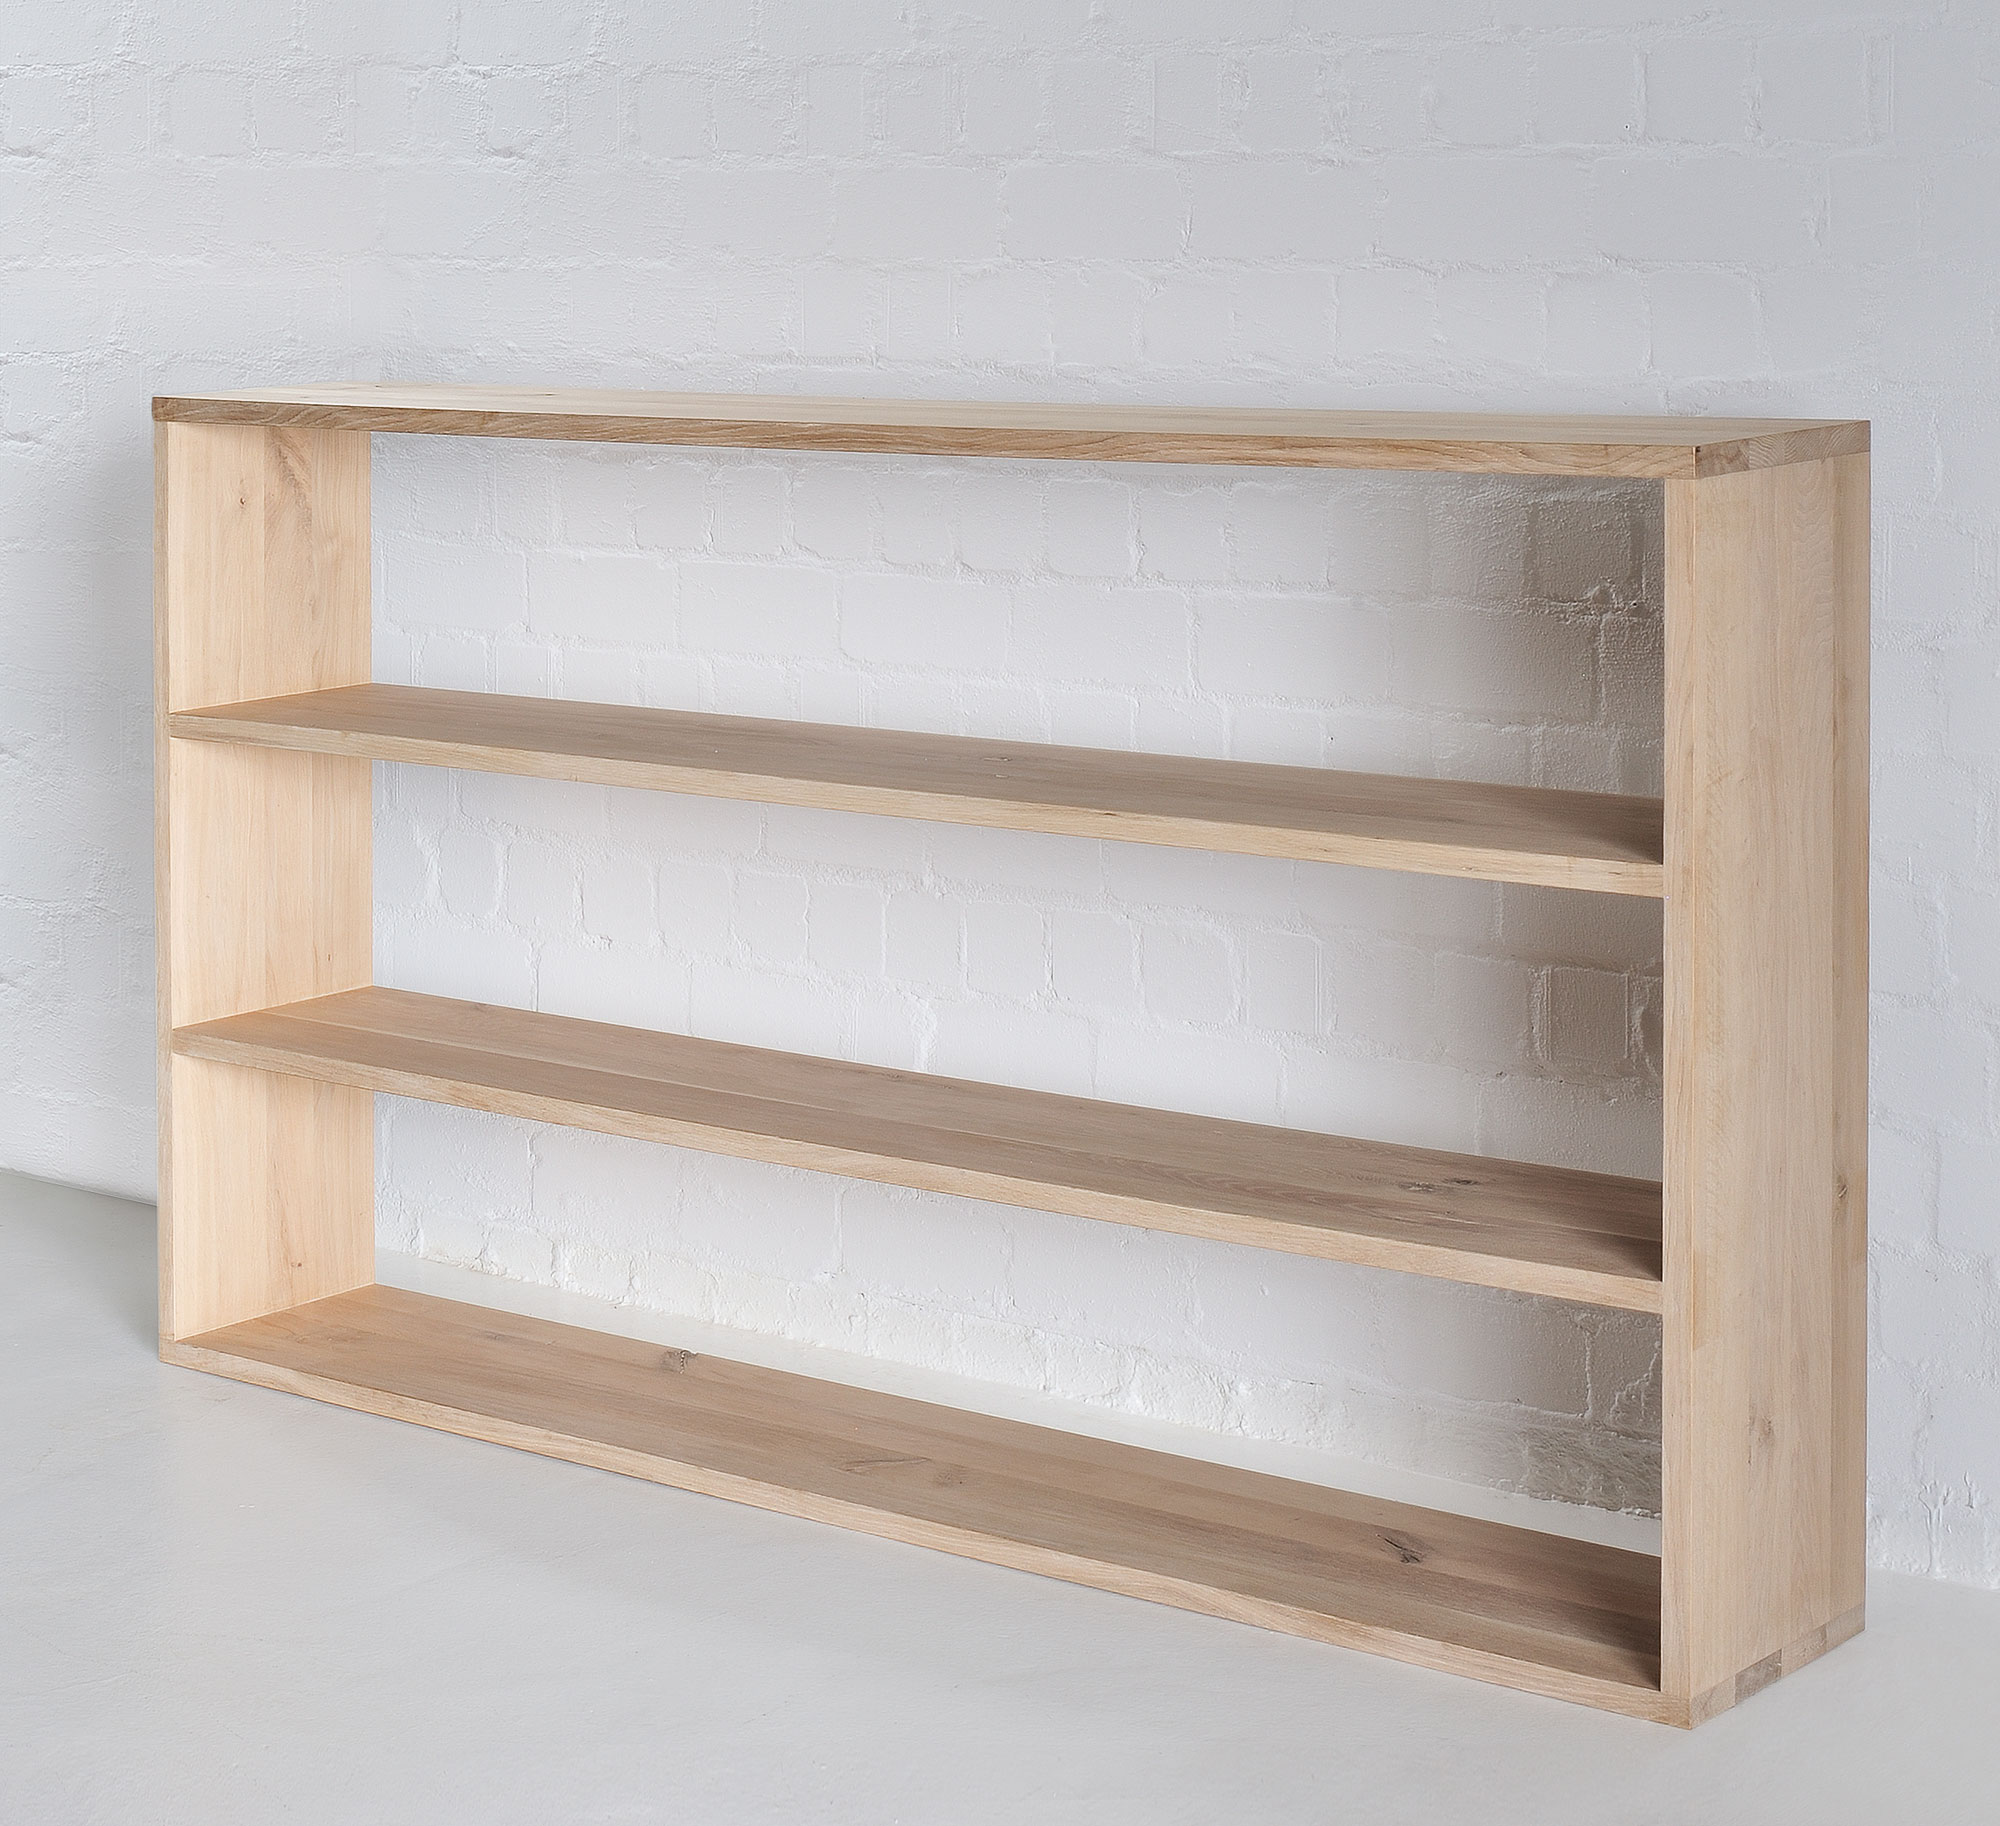 Wooden Shelf MENA 1 custom made in solid wood by vitamin design